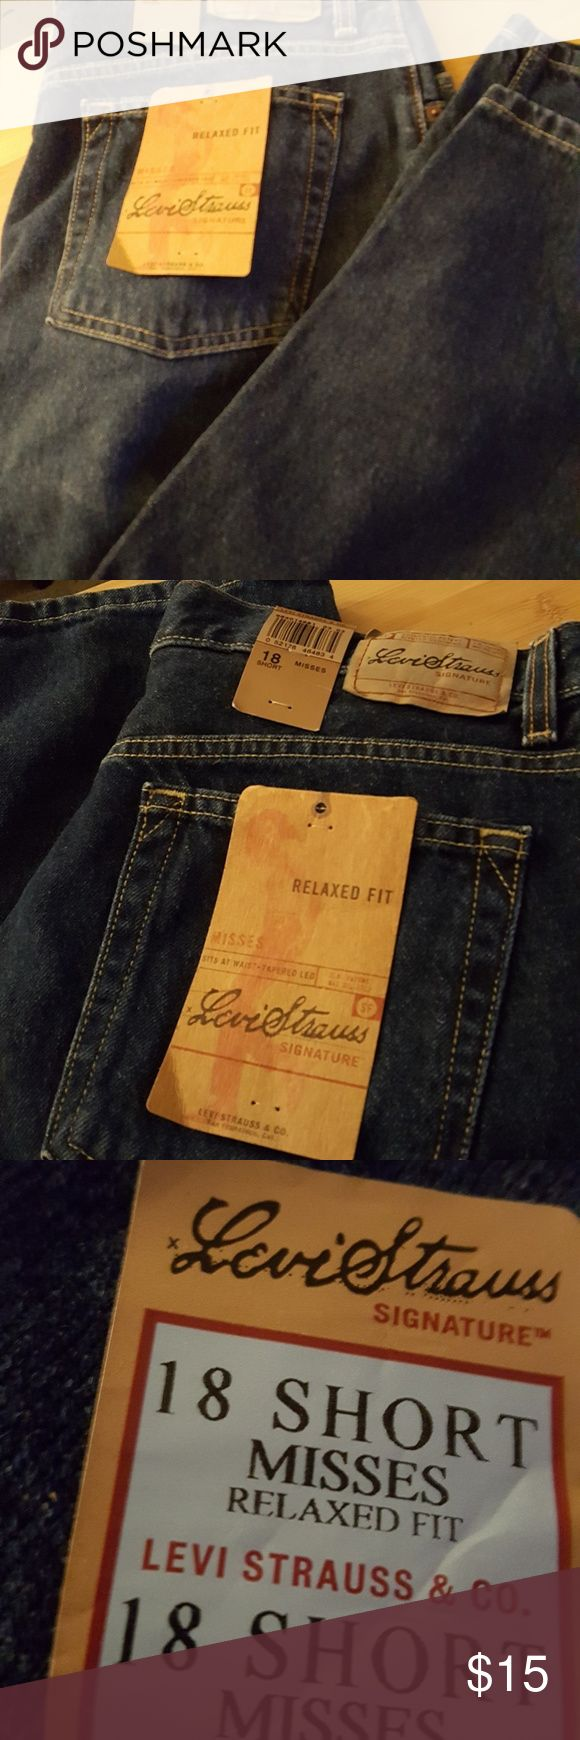 NWT LEVIS STAUSS SIGNATURE JEANS 18 SHORT RELAXED FIT Levi's Jeans